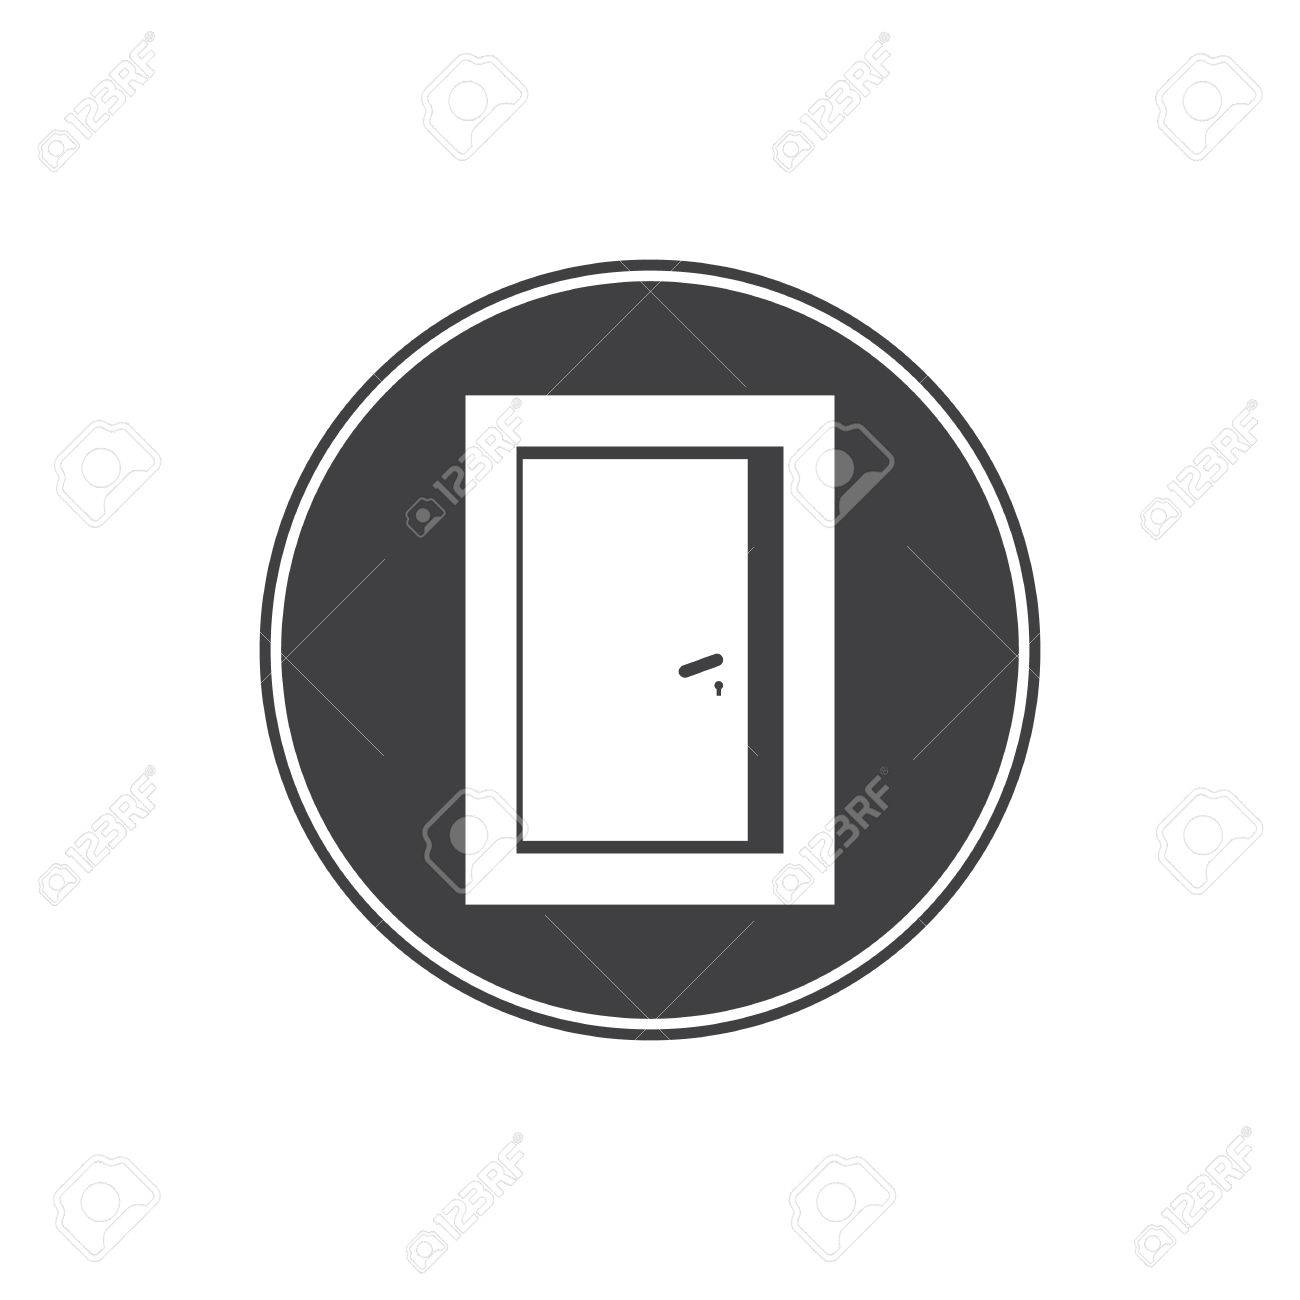 Open Door Icon Royalty Free Cliparts, Vectors, And Stock ...